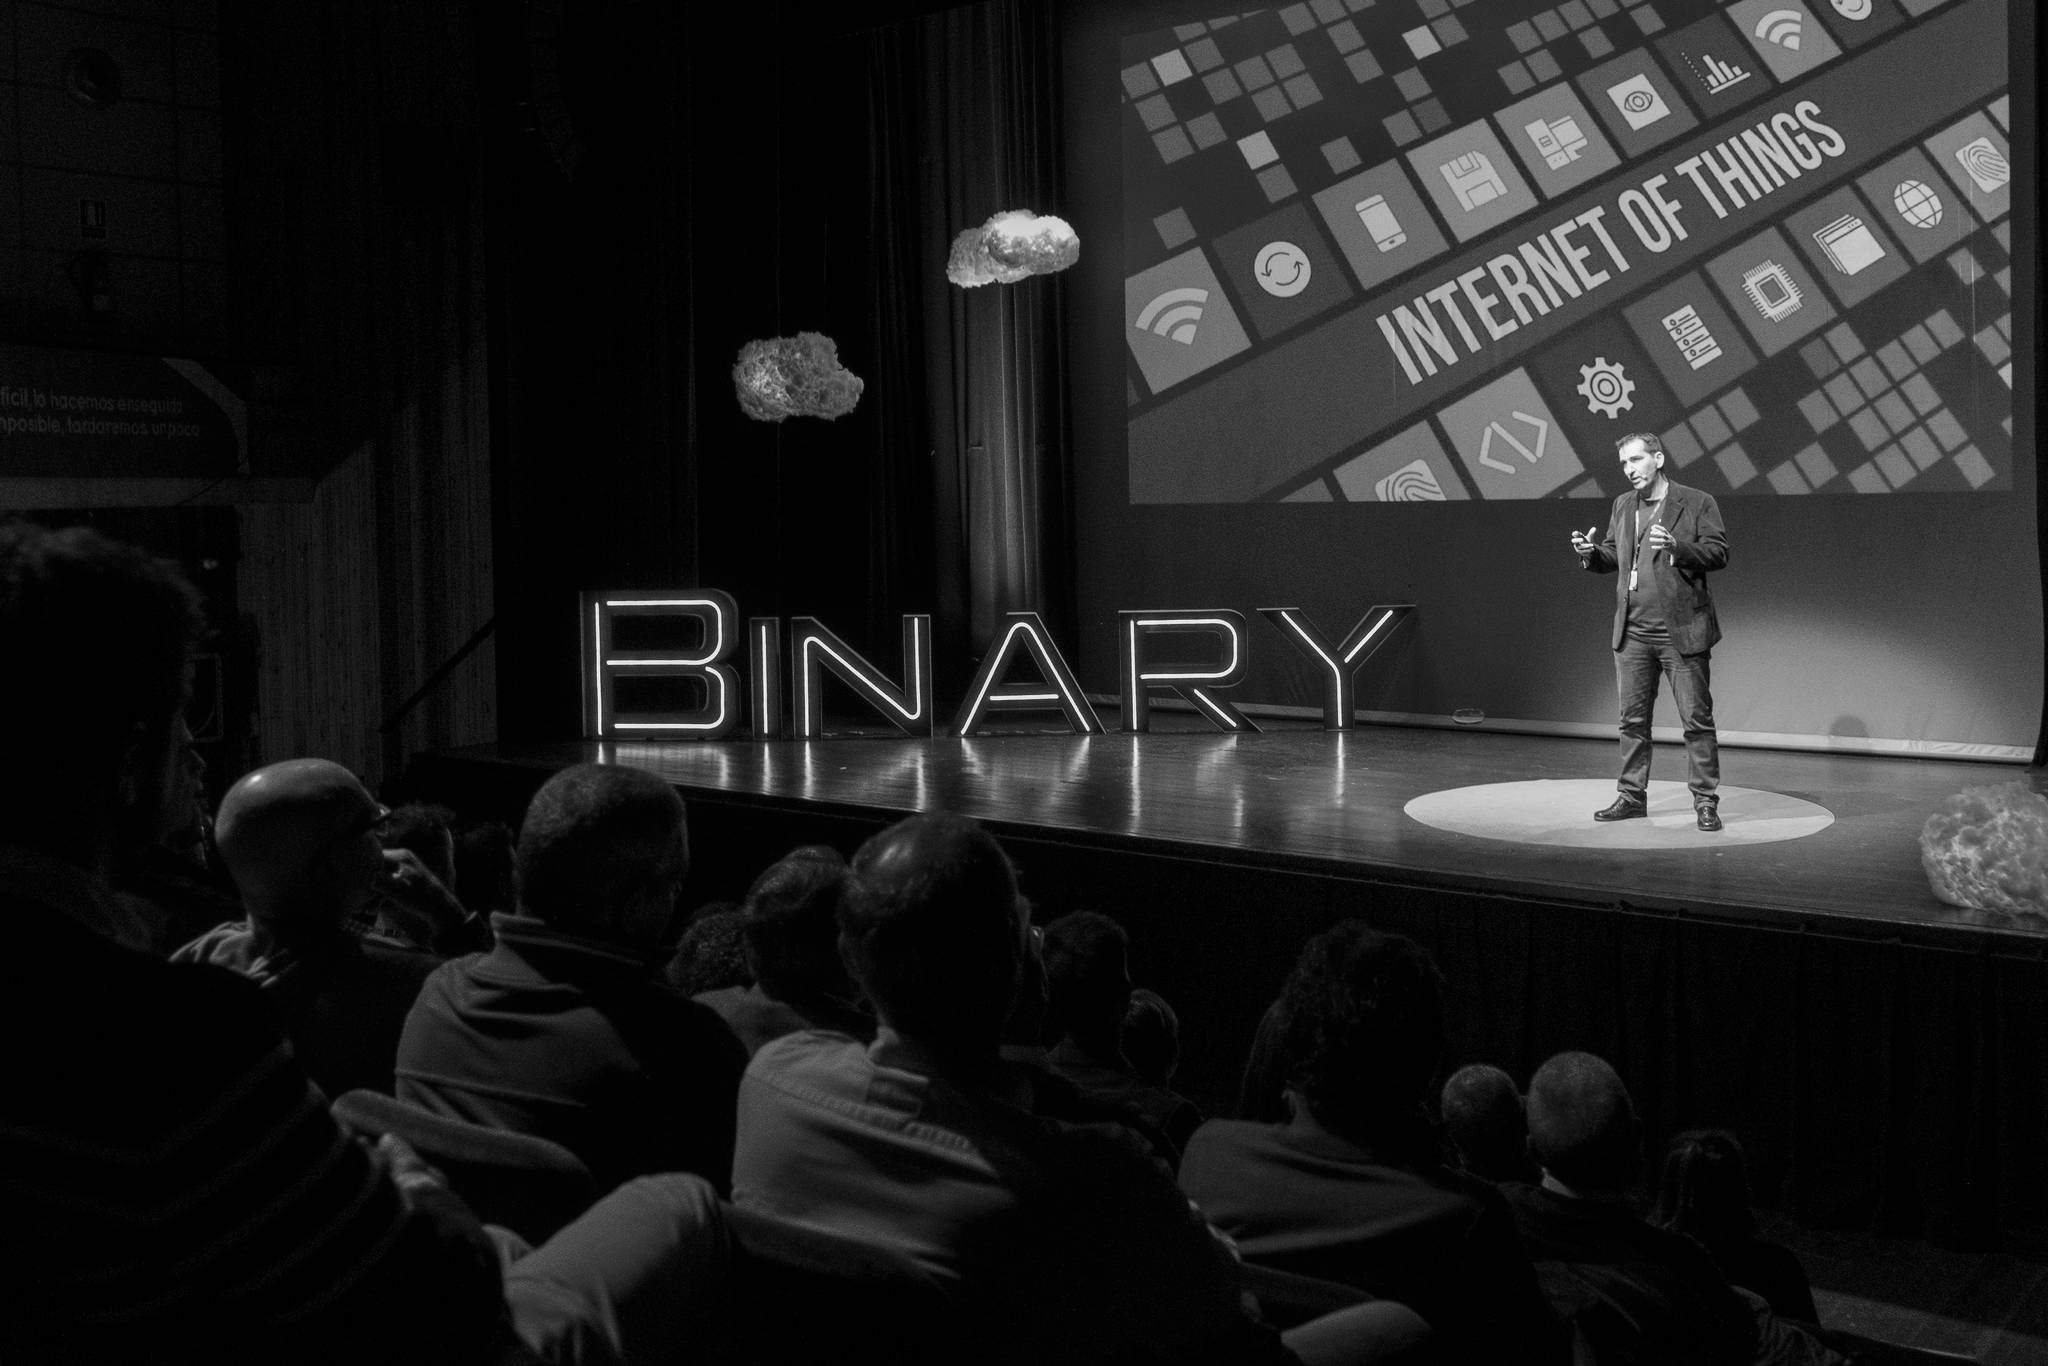 Binary Day